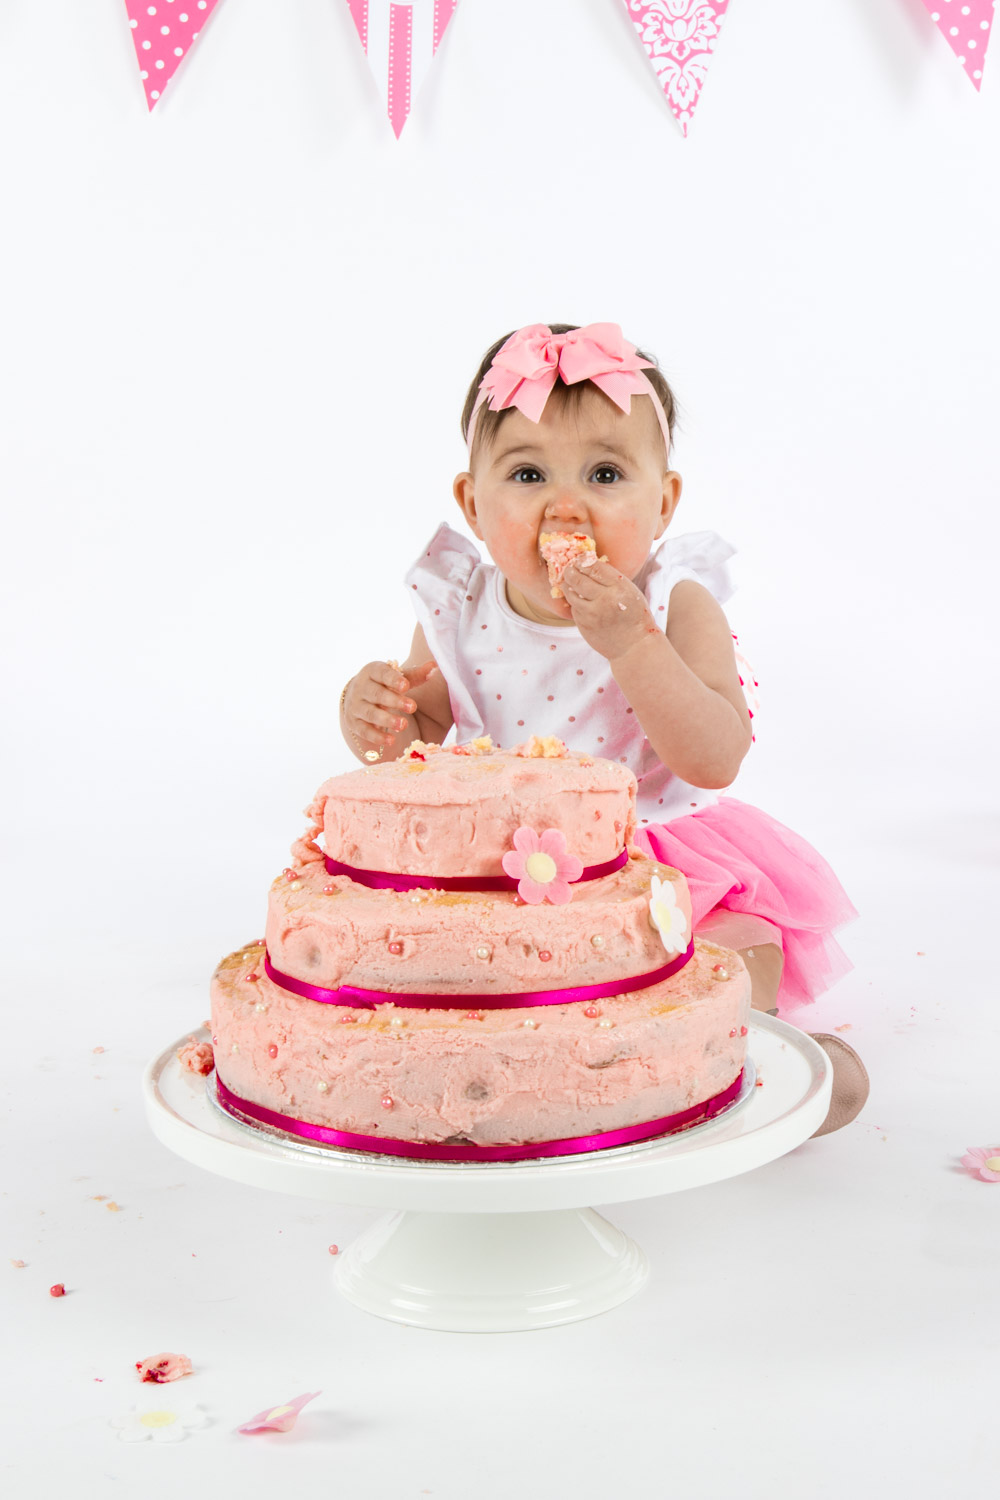 Cake Smash sessions - This is a fun one! We set up a nice white backdrop, give your kid a cake and let them go berserk! Can be set up right at your home. Don't worry if you don't have the space or are worried about mess- I can organise another space.The $300 gets you the session time and 20-30 edited digital images. I can help out with prints too if that's something you would like.Basic decorations included in the cost. You provide the cake...and baby:)Get in touch with me anytime for bookings or more info via the contact form or you can call or text me. 0438 889 539-Fletch